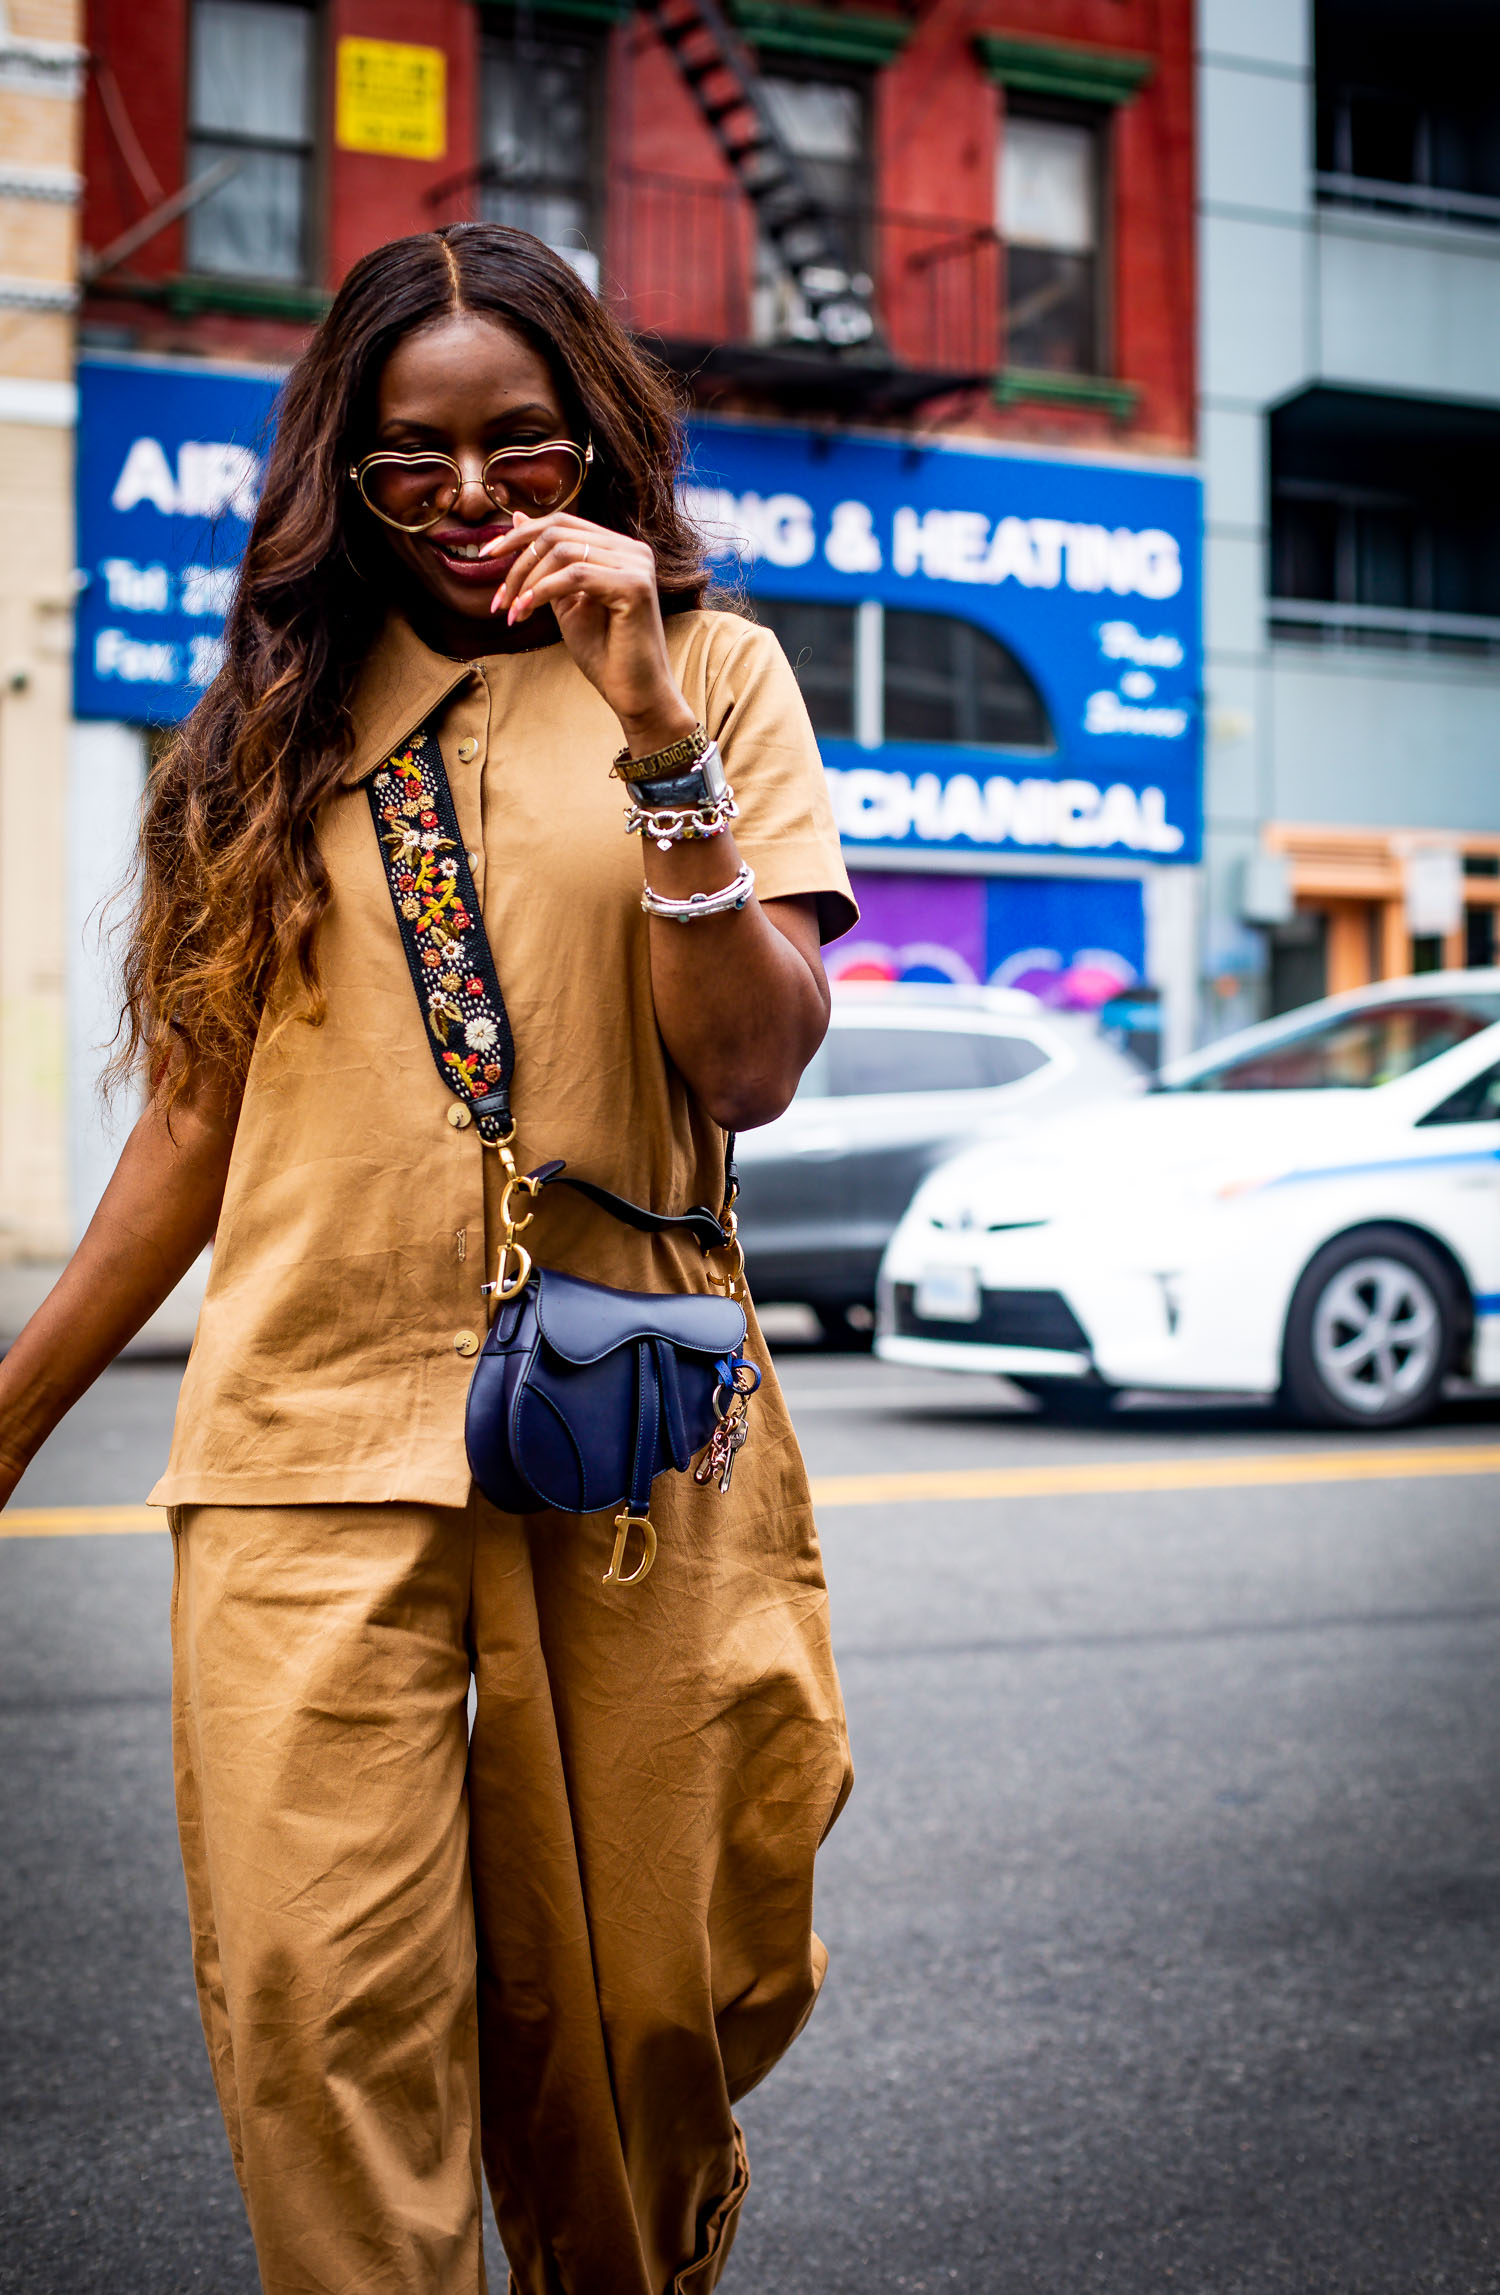 18fb3a64cab 3 tips on how to look chic in a utility jumpsuit. Atlanta fashion and  lifestyle. How to style the new Dior saddle bag and logo strap.